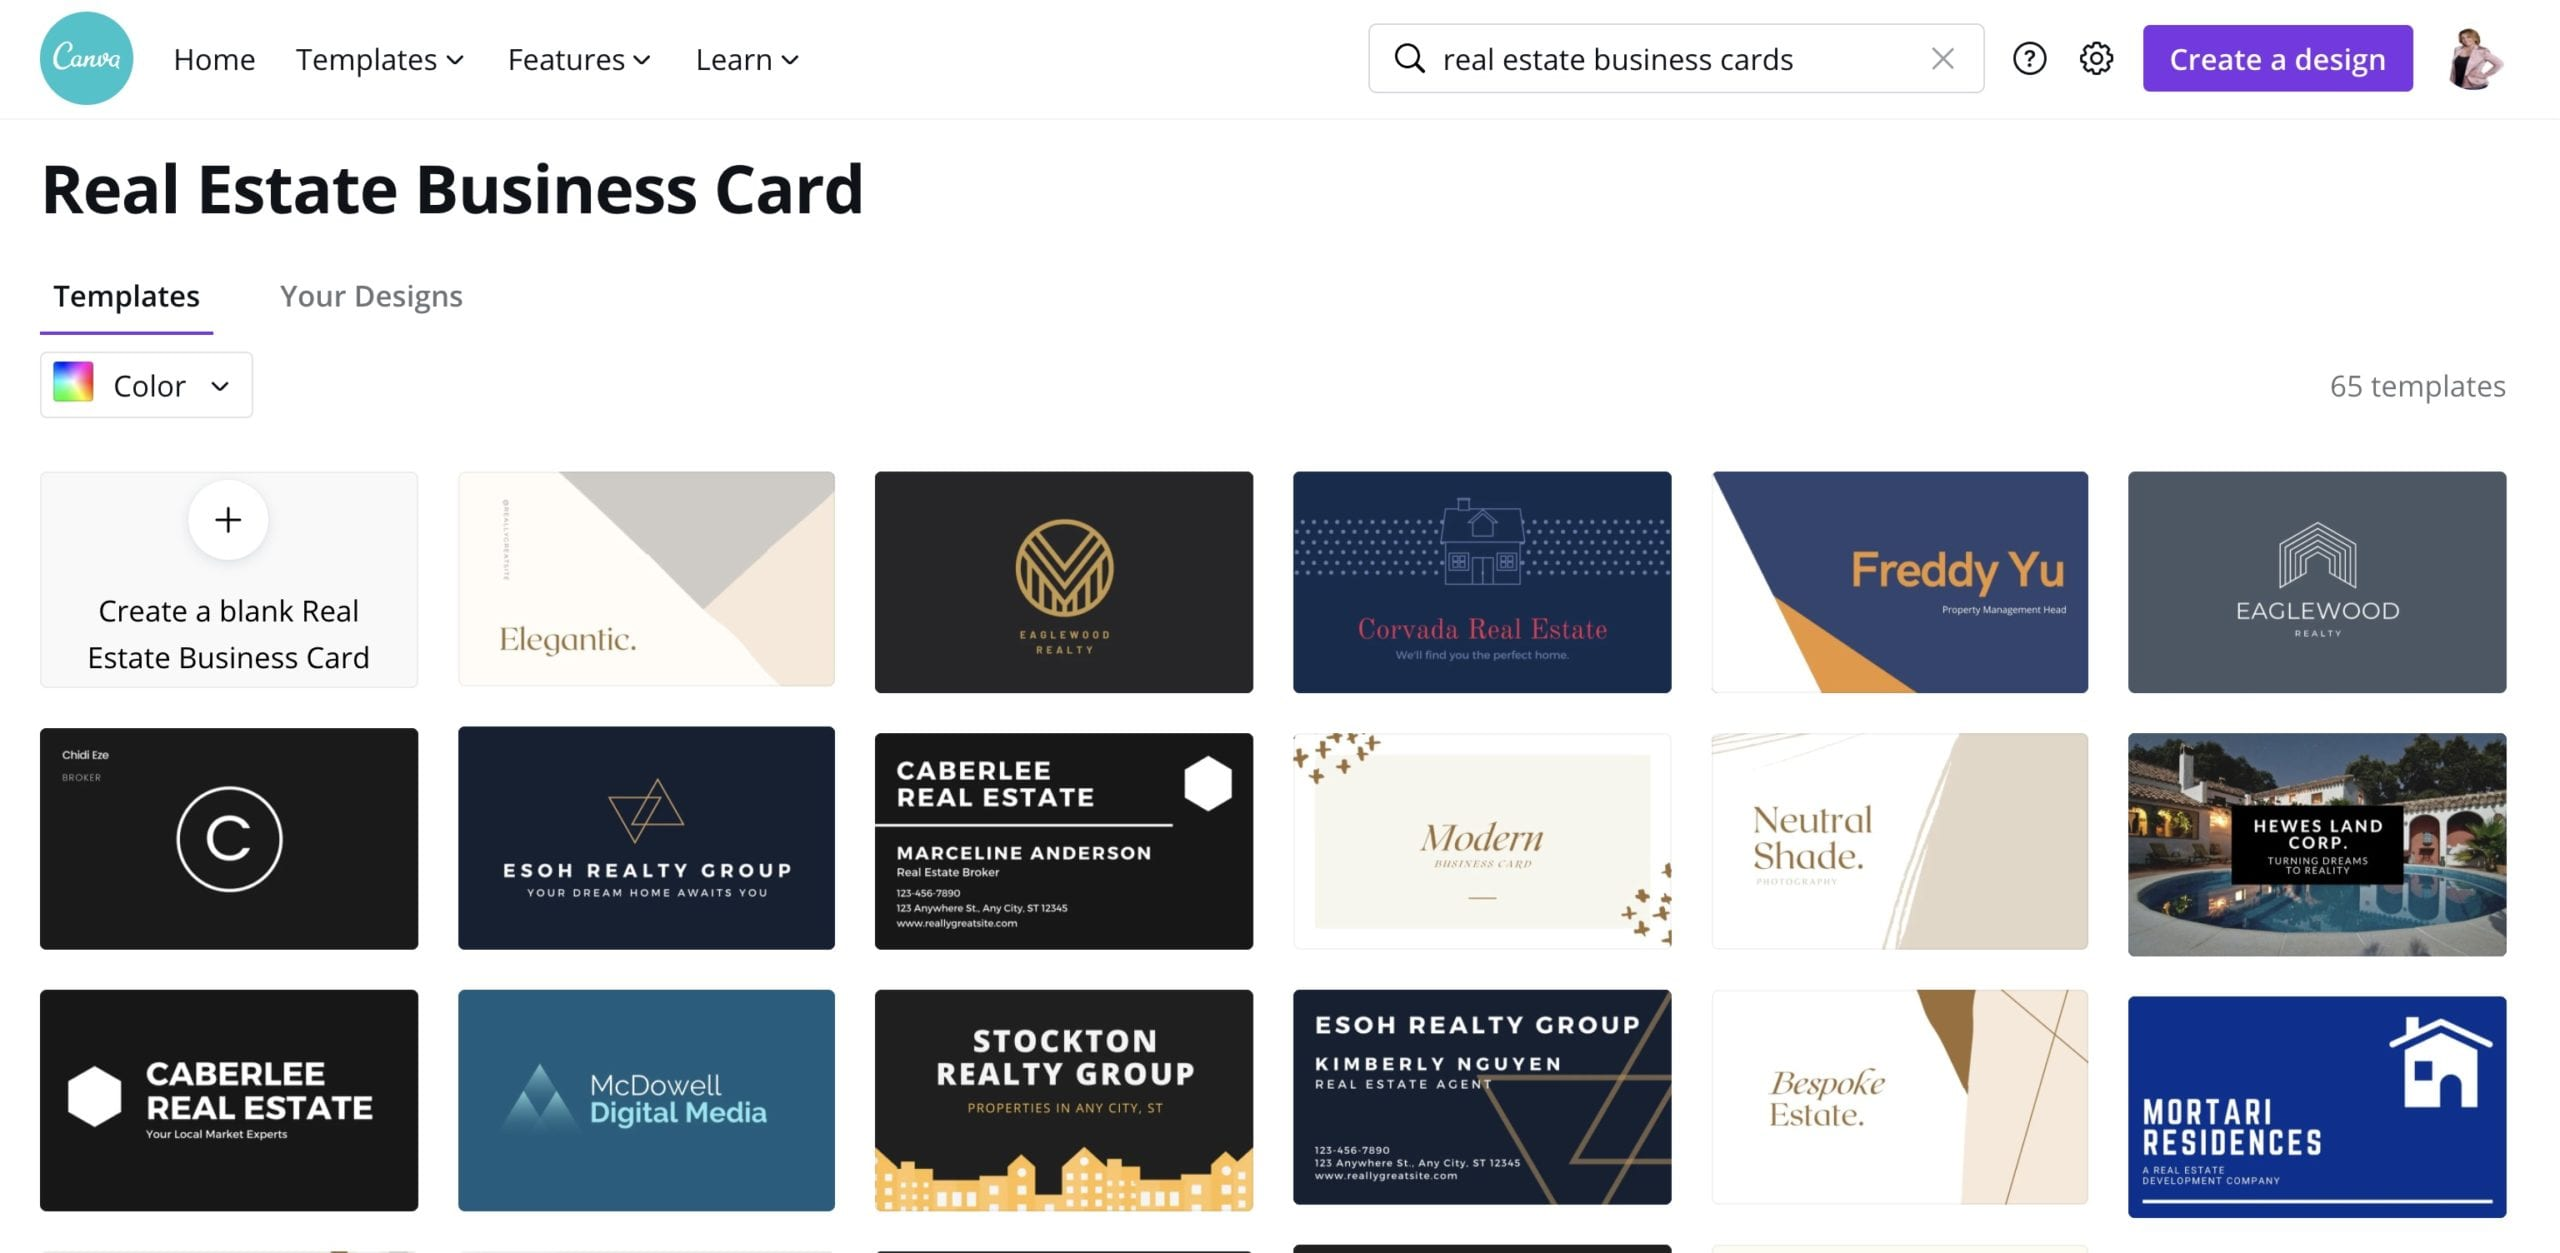 Make real estate business cards in canva